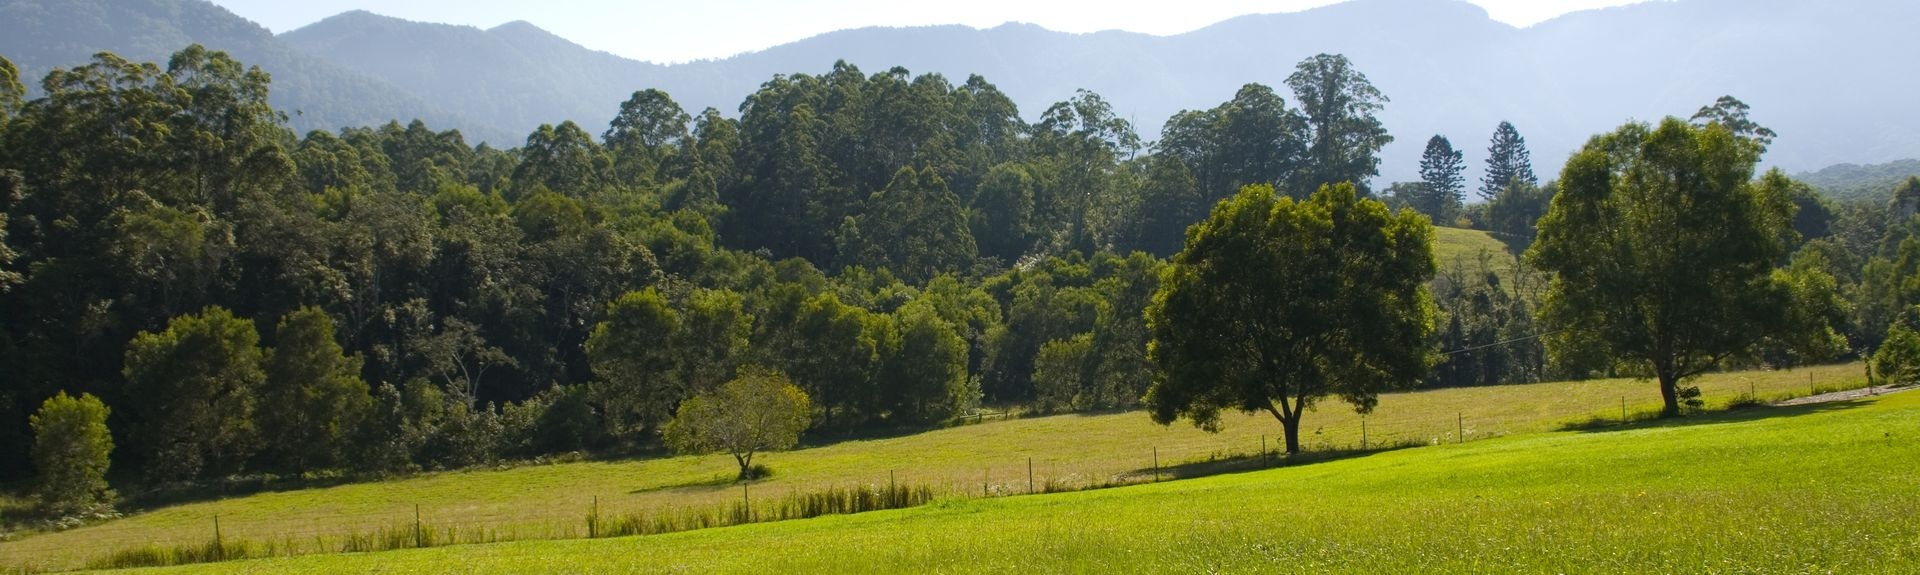 Bellingen, New South Wales, Australië